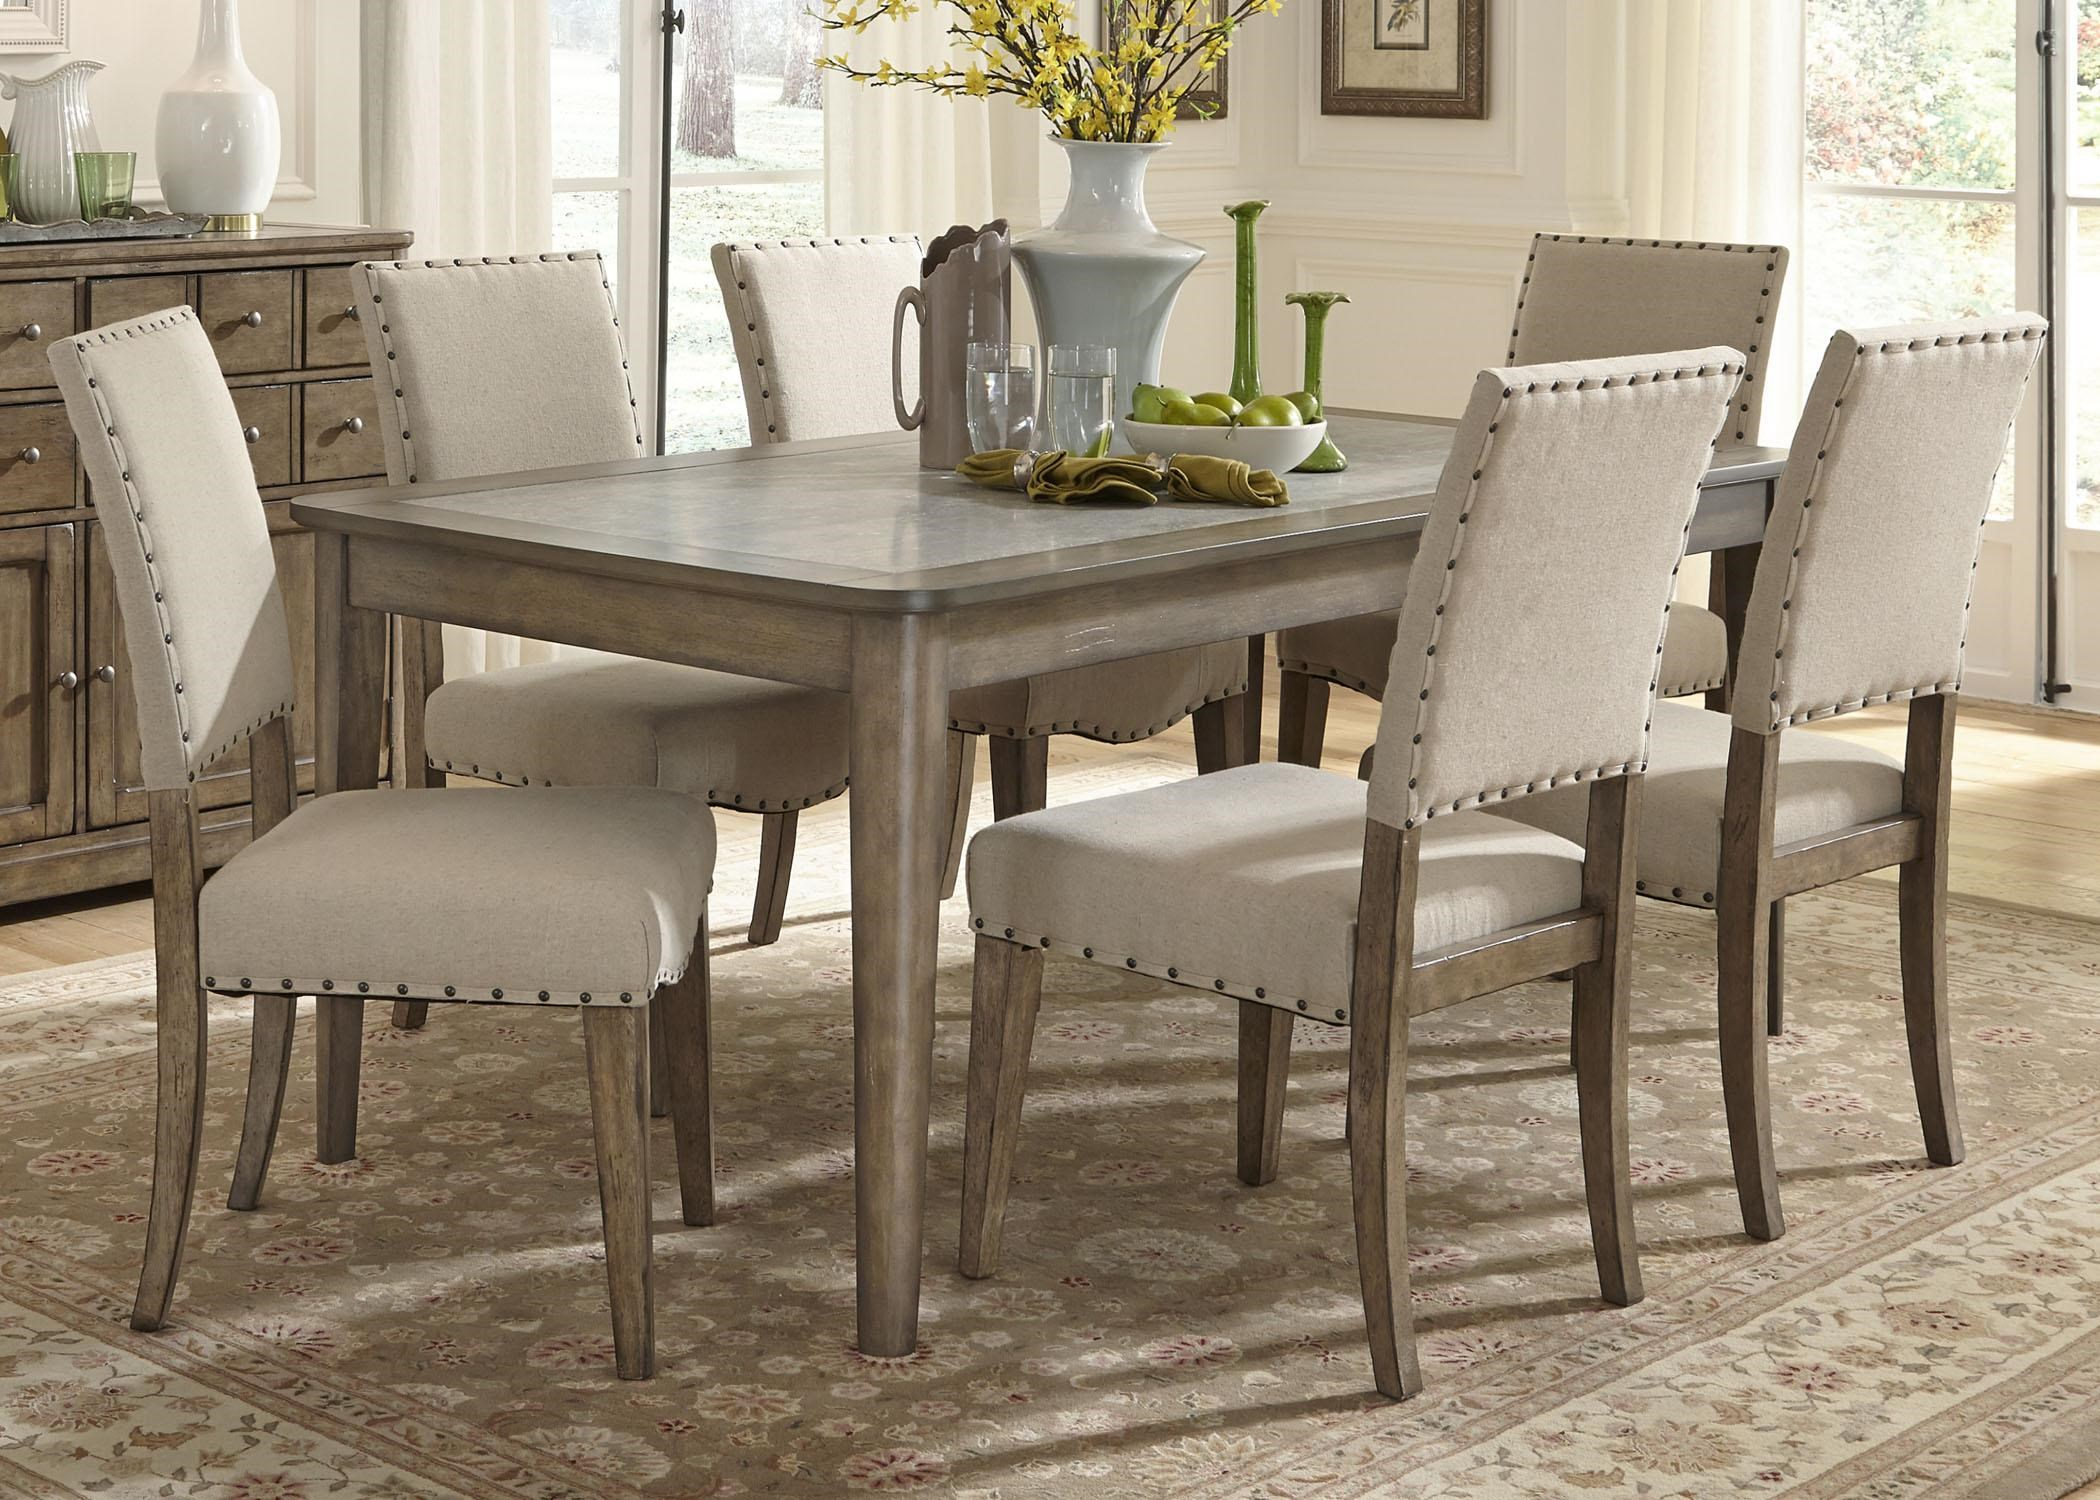 Merveilleux Liberty Furniture Weatherford 7 Piece Dining Table And Chairs Set